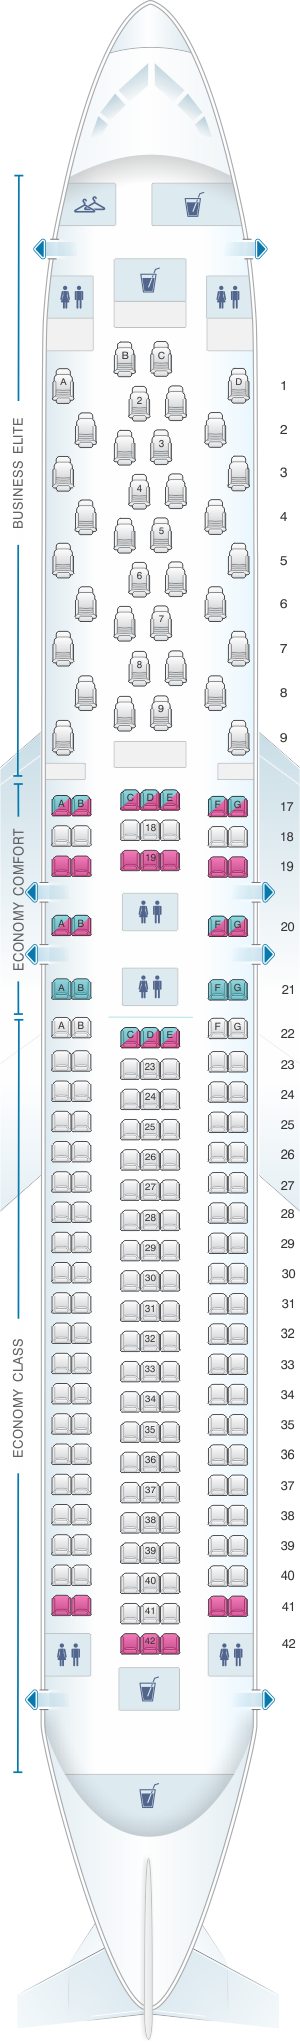 Seat map for Delta Air Lines Boeing B767 300ER (76T)